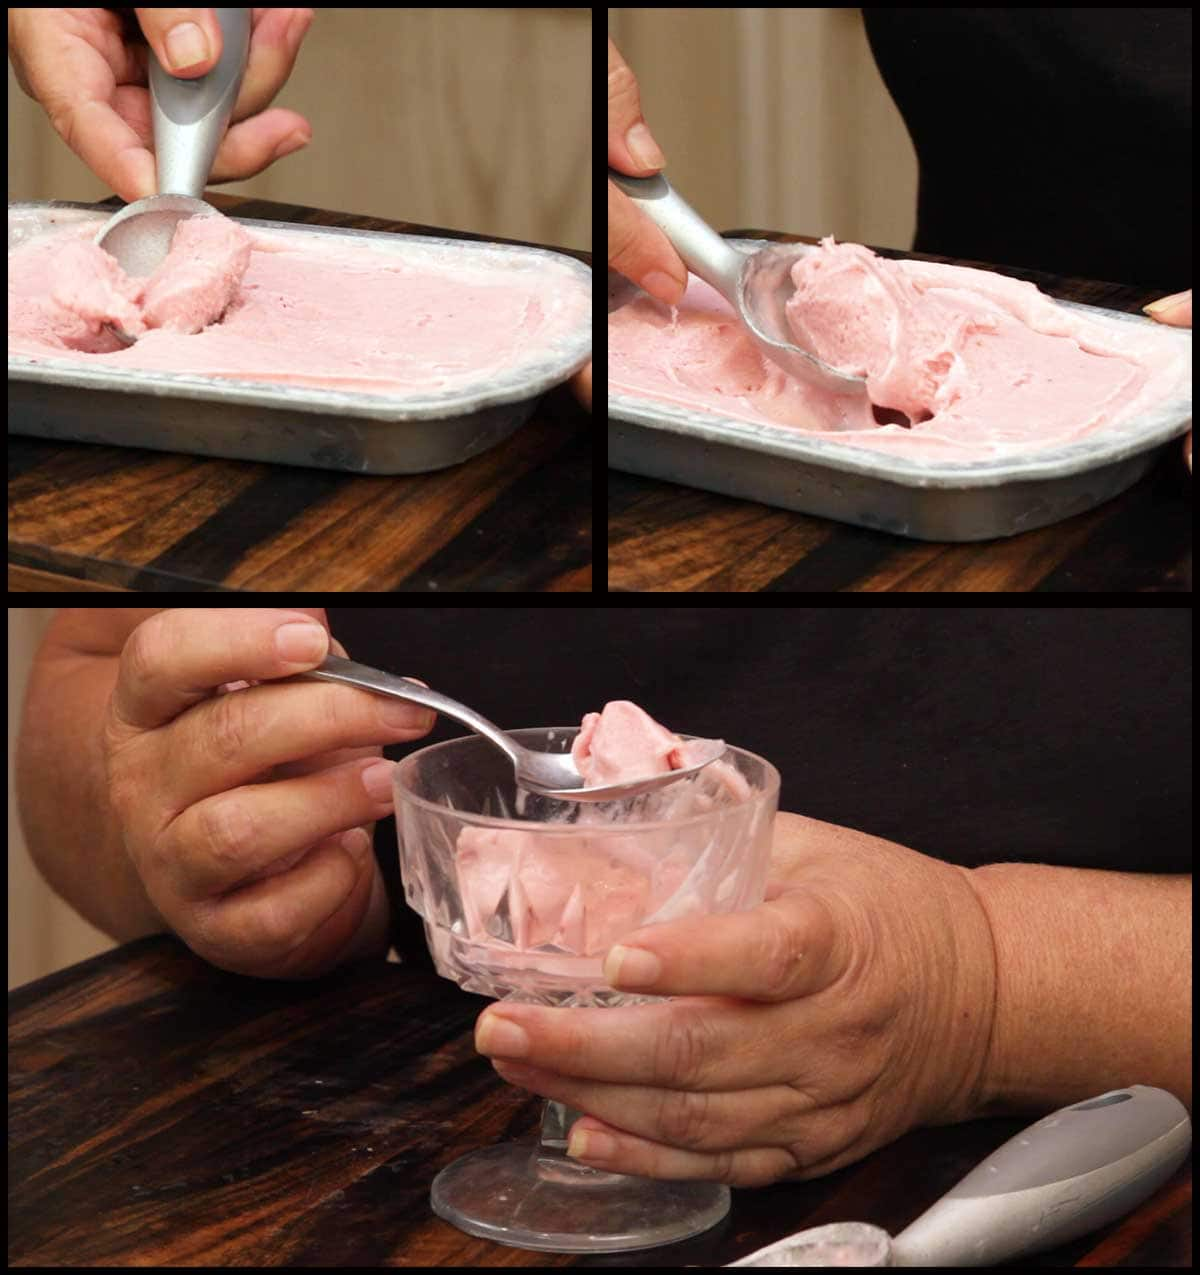 scooping and serving homemade strawberry ice cream